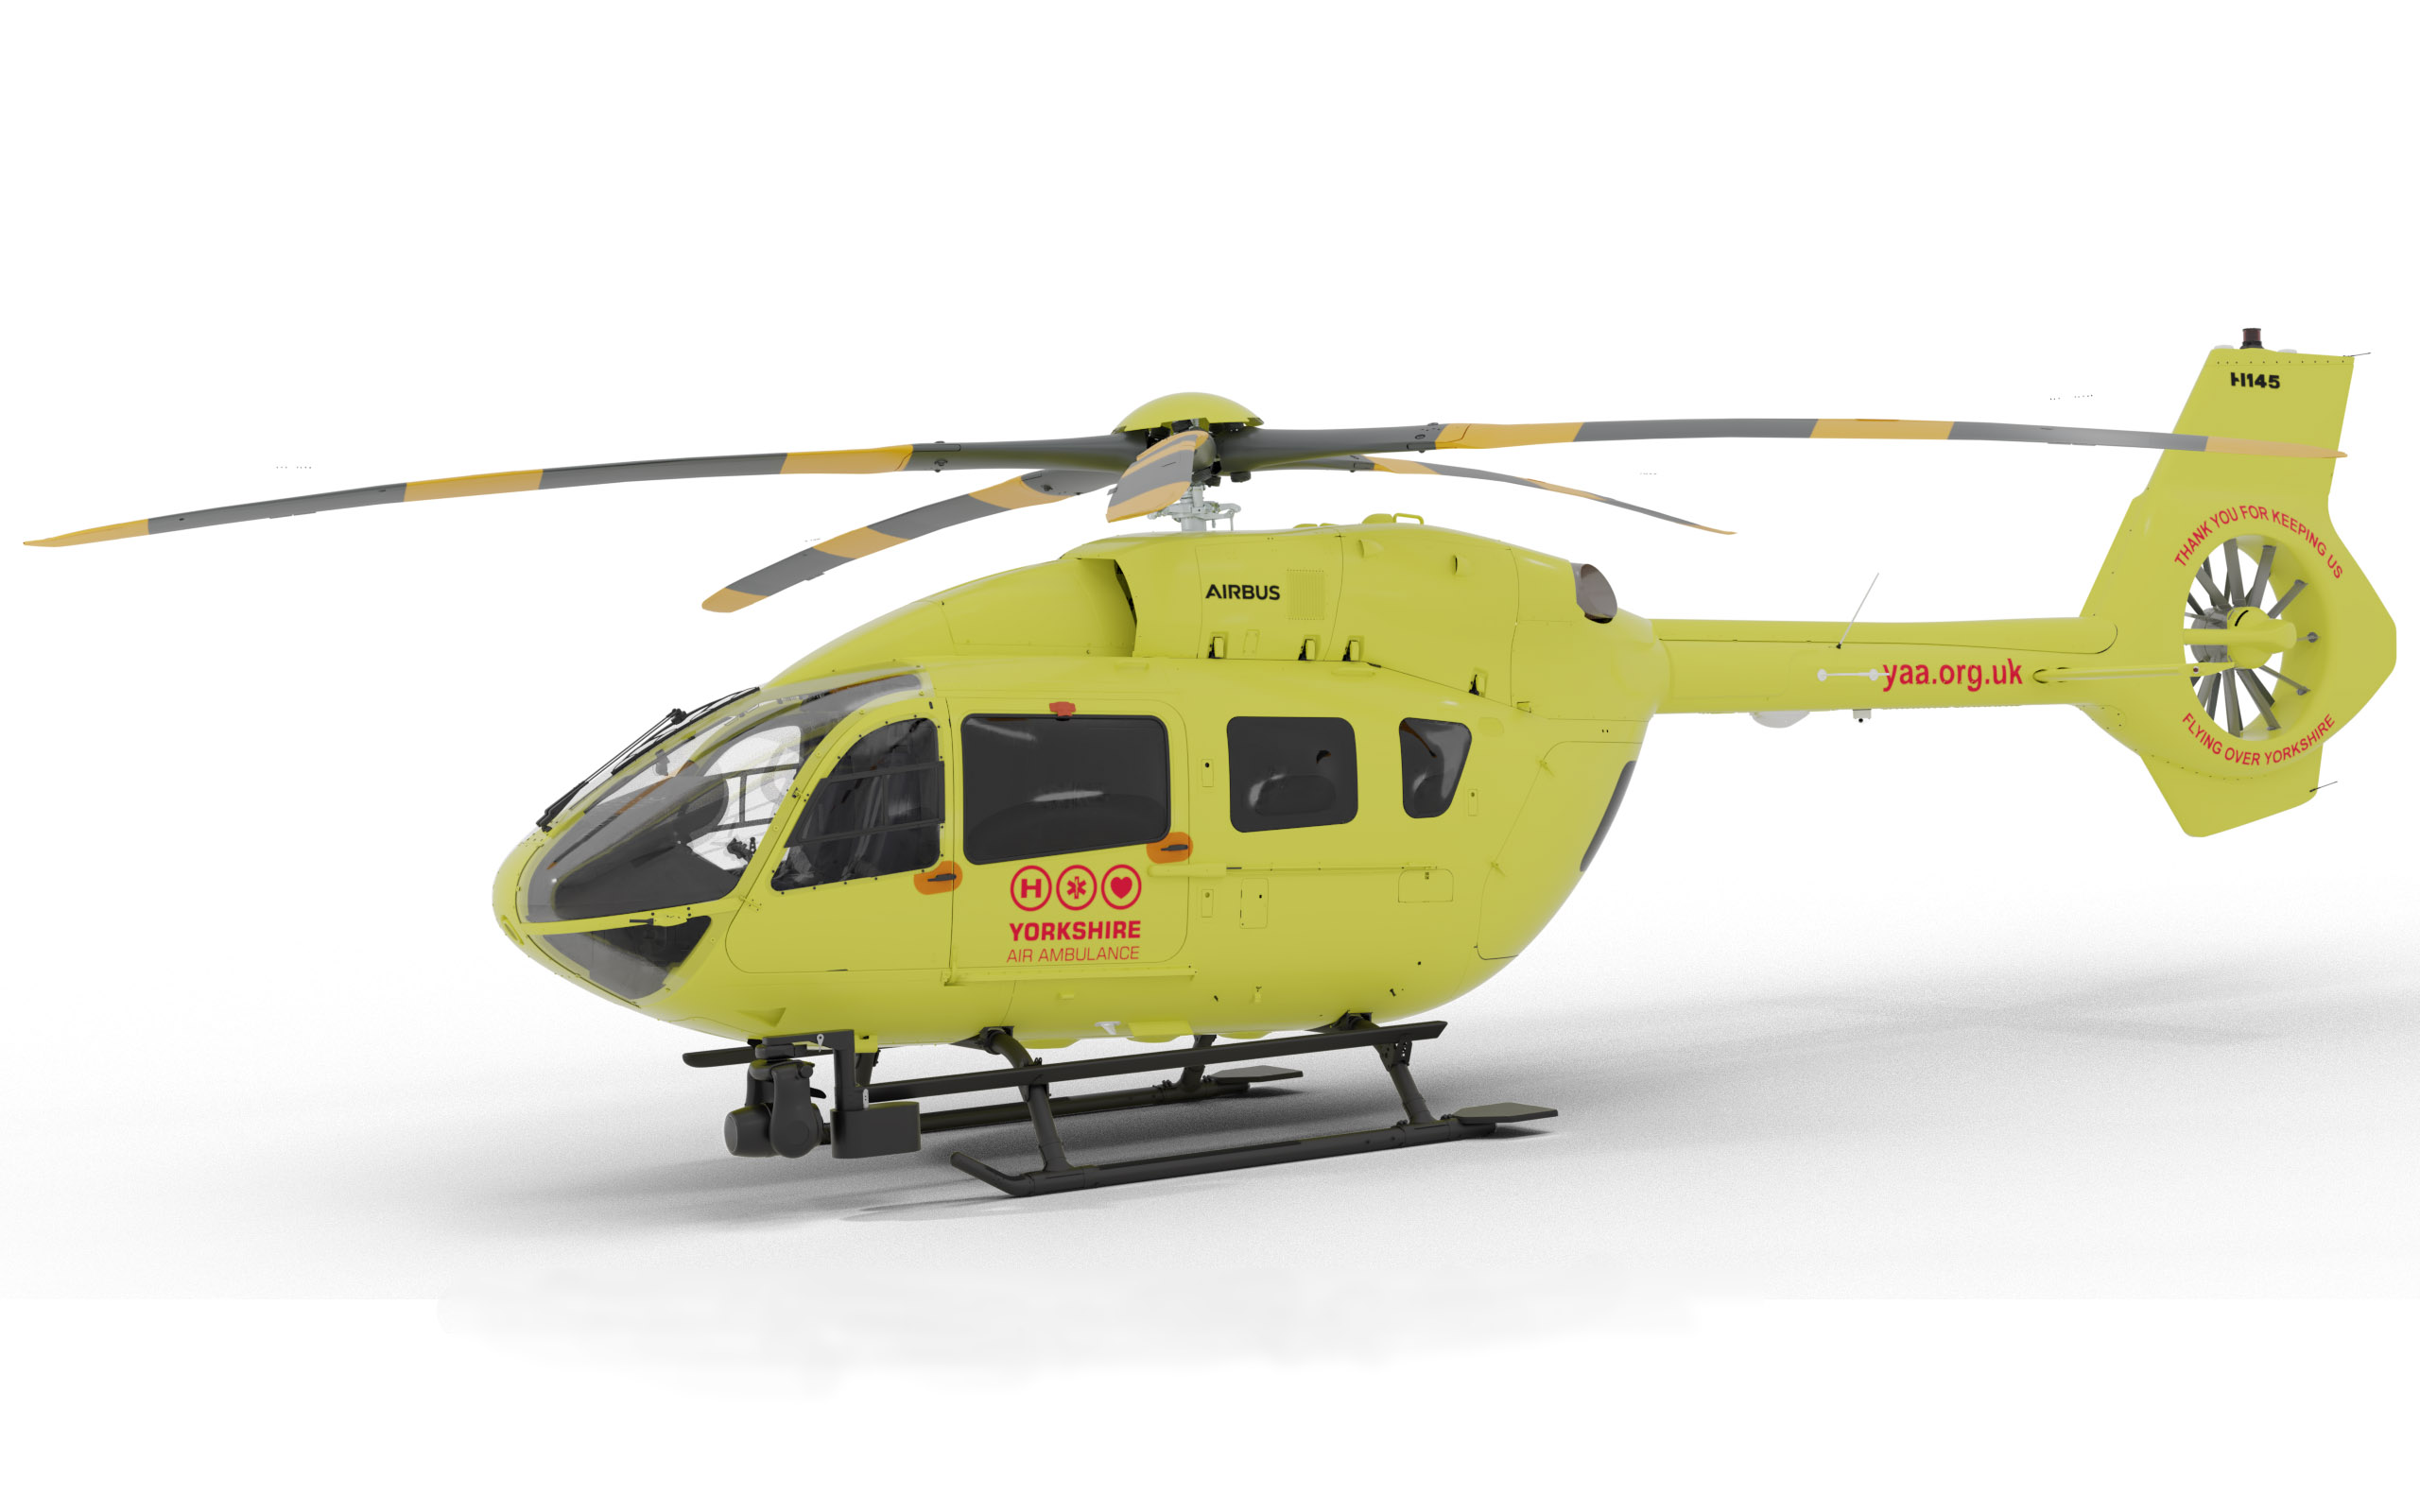 Yorkshire Air Ambulance signs up for two H145s